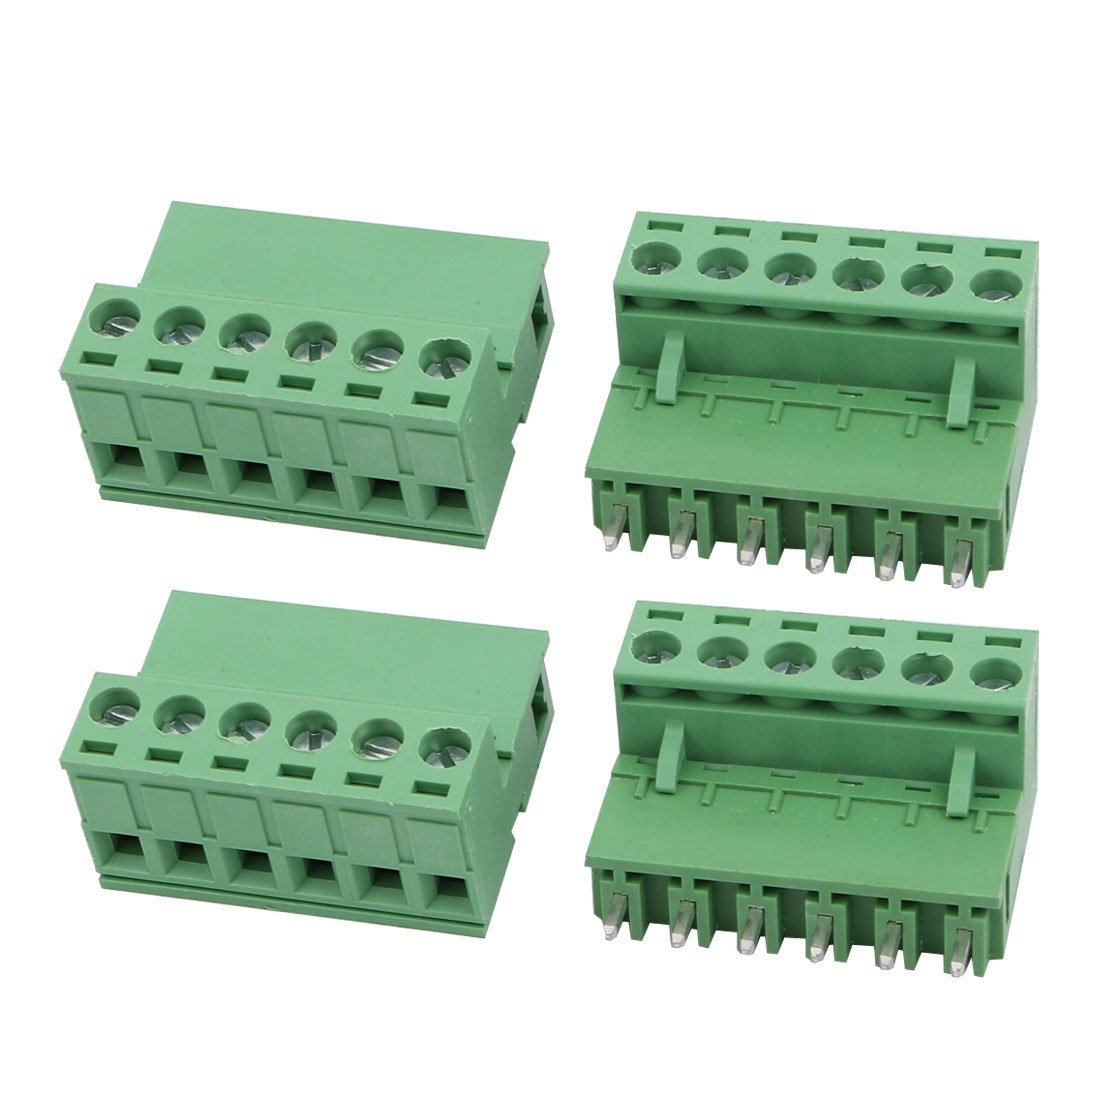 uxcell 4Sets AC 300V 10A 5.08mm Pitch 6P PCB Terminal Block Female Male Wire Connector